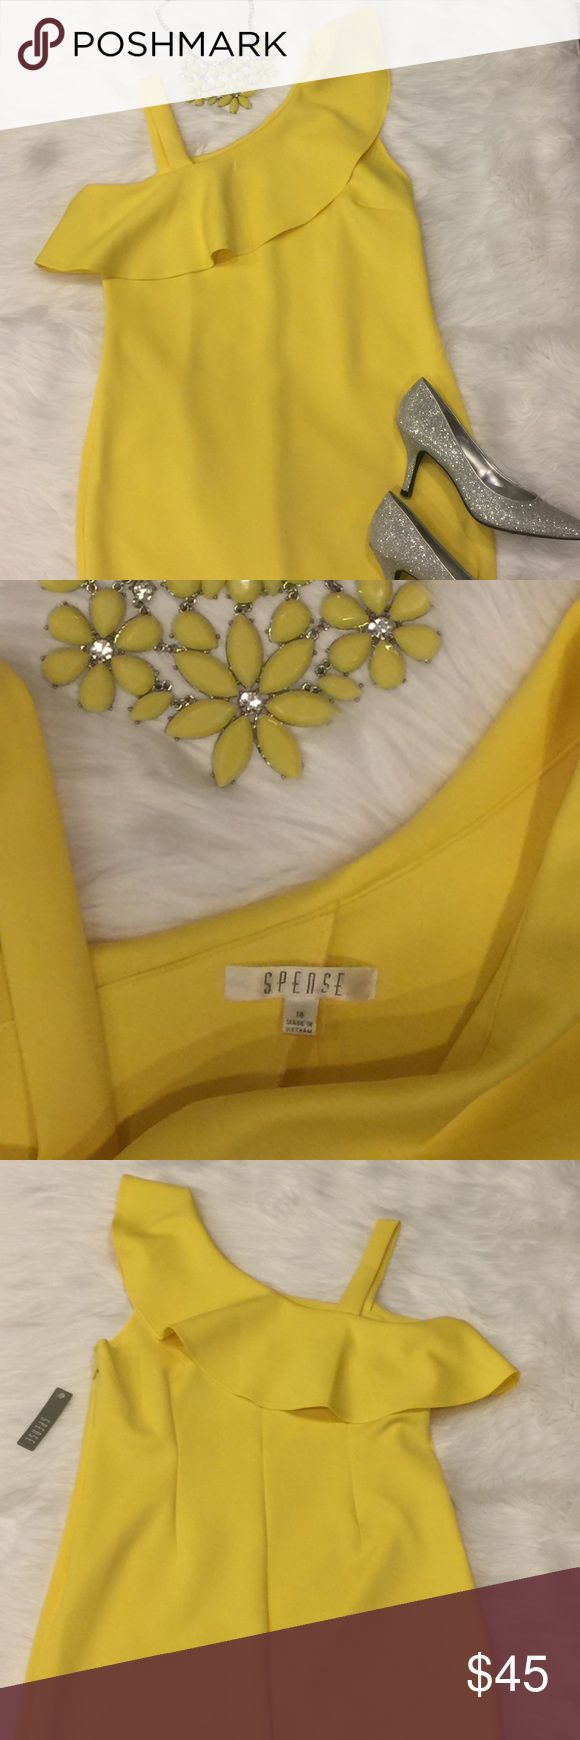 🆕 Spense lemon yellow plus size dress SZ 14 Unbelievably adorable lemon yellow colored Spense plus size dress in a size 14. New with tag attached. Supple thick but stretchy fabric sure to accentuate gorgeous curves, darts sewn in the back! Sexy one shoulder design, with ruffle details. Zipper side closure. Spense Dresses Midi